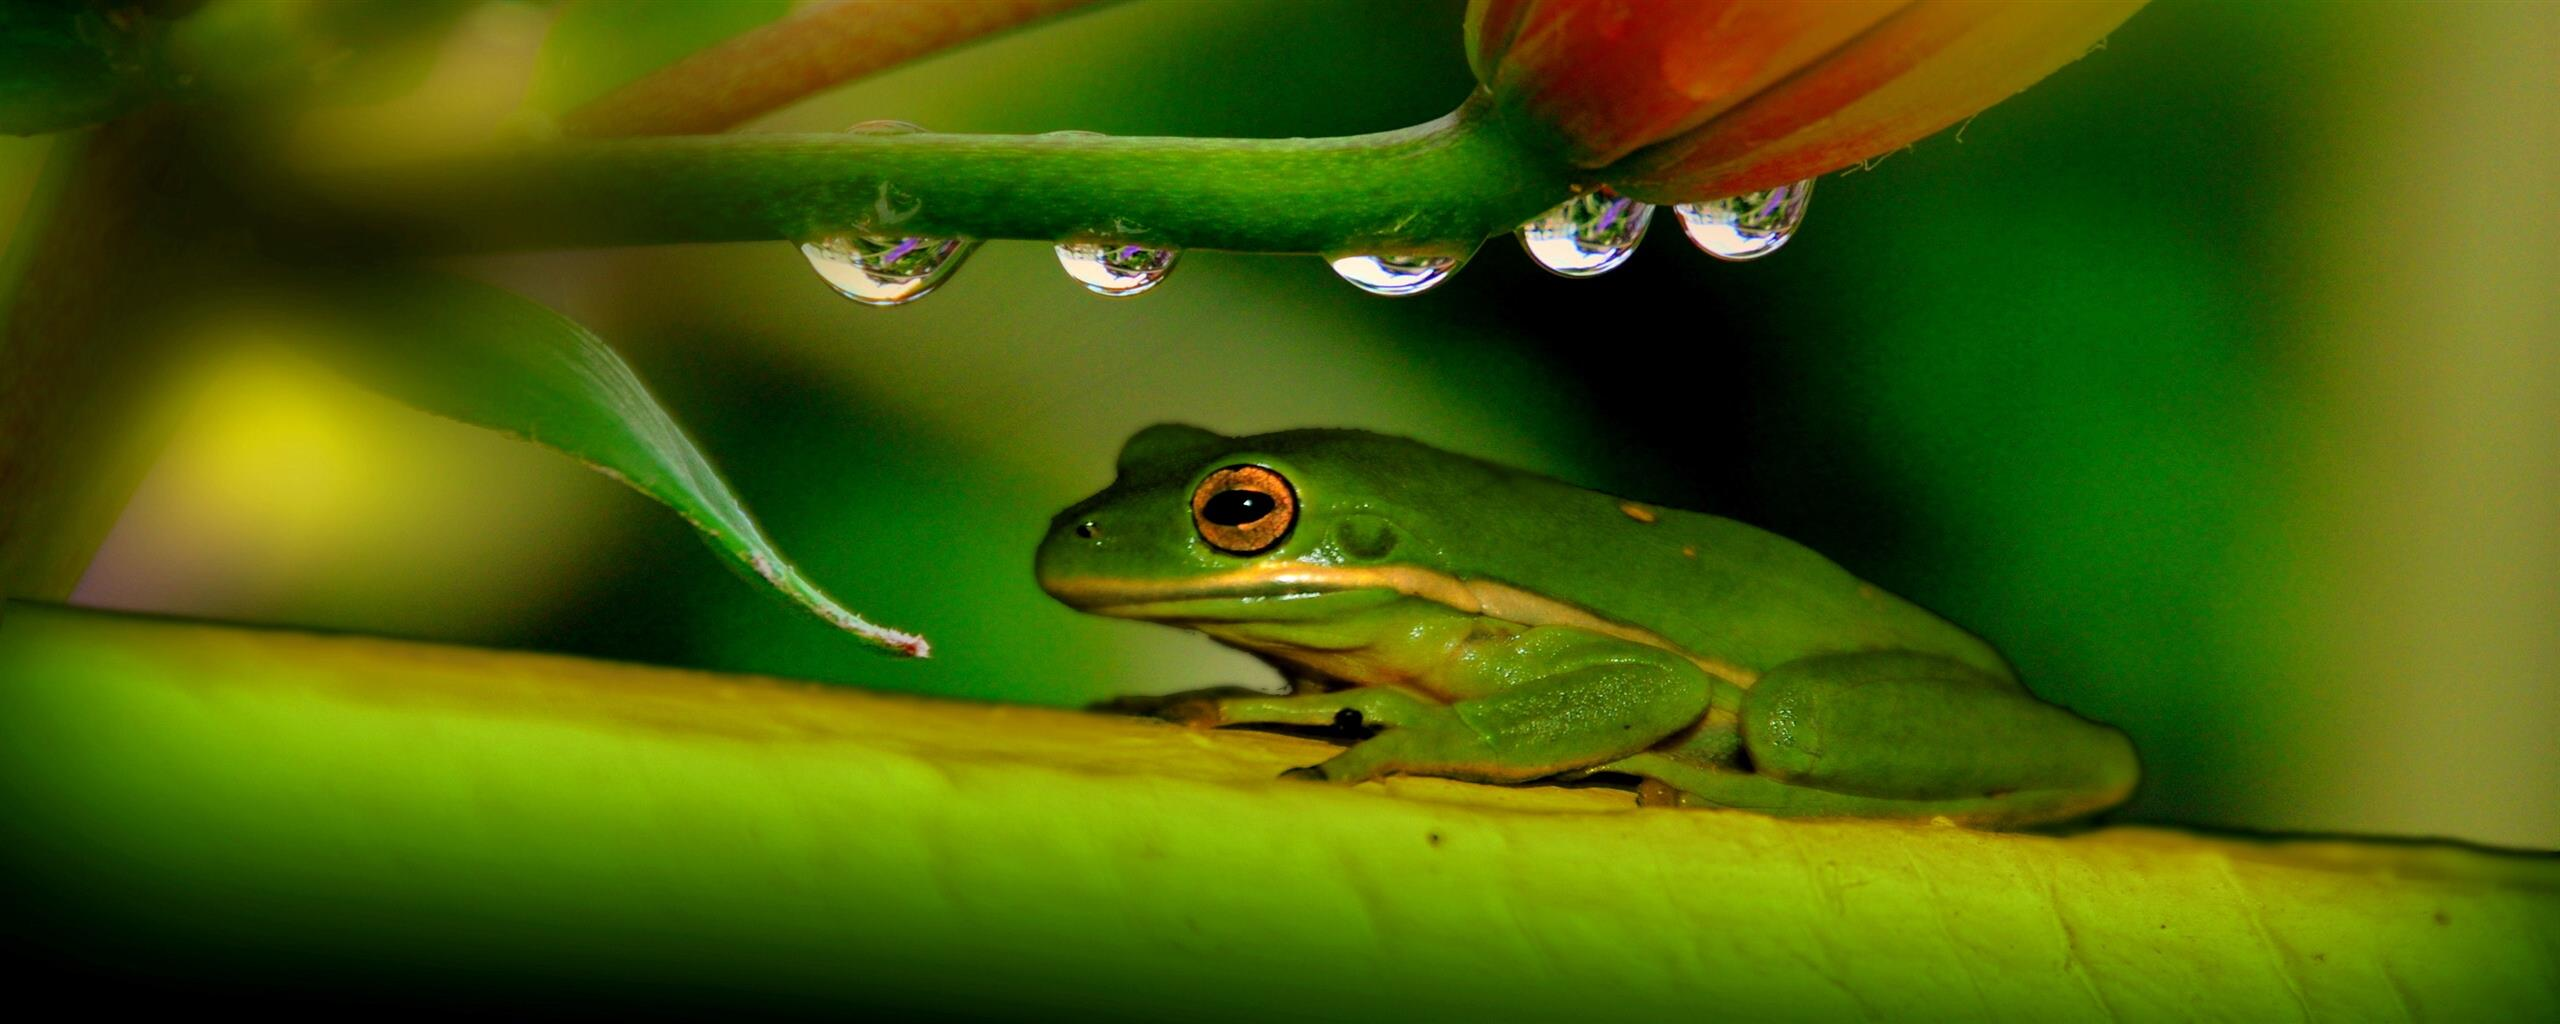 2560x1024 Green Frog On Leave Photo